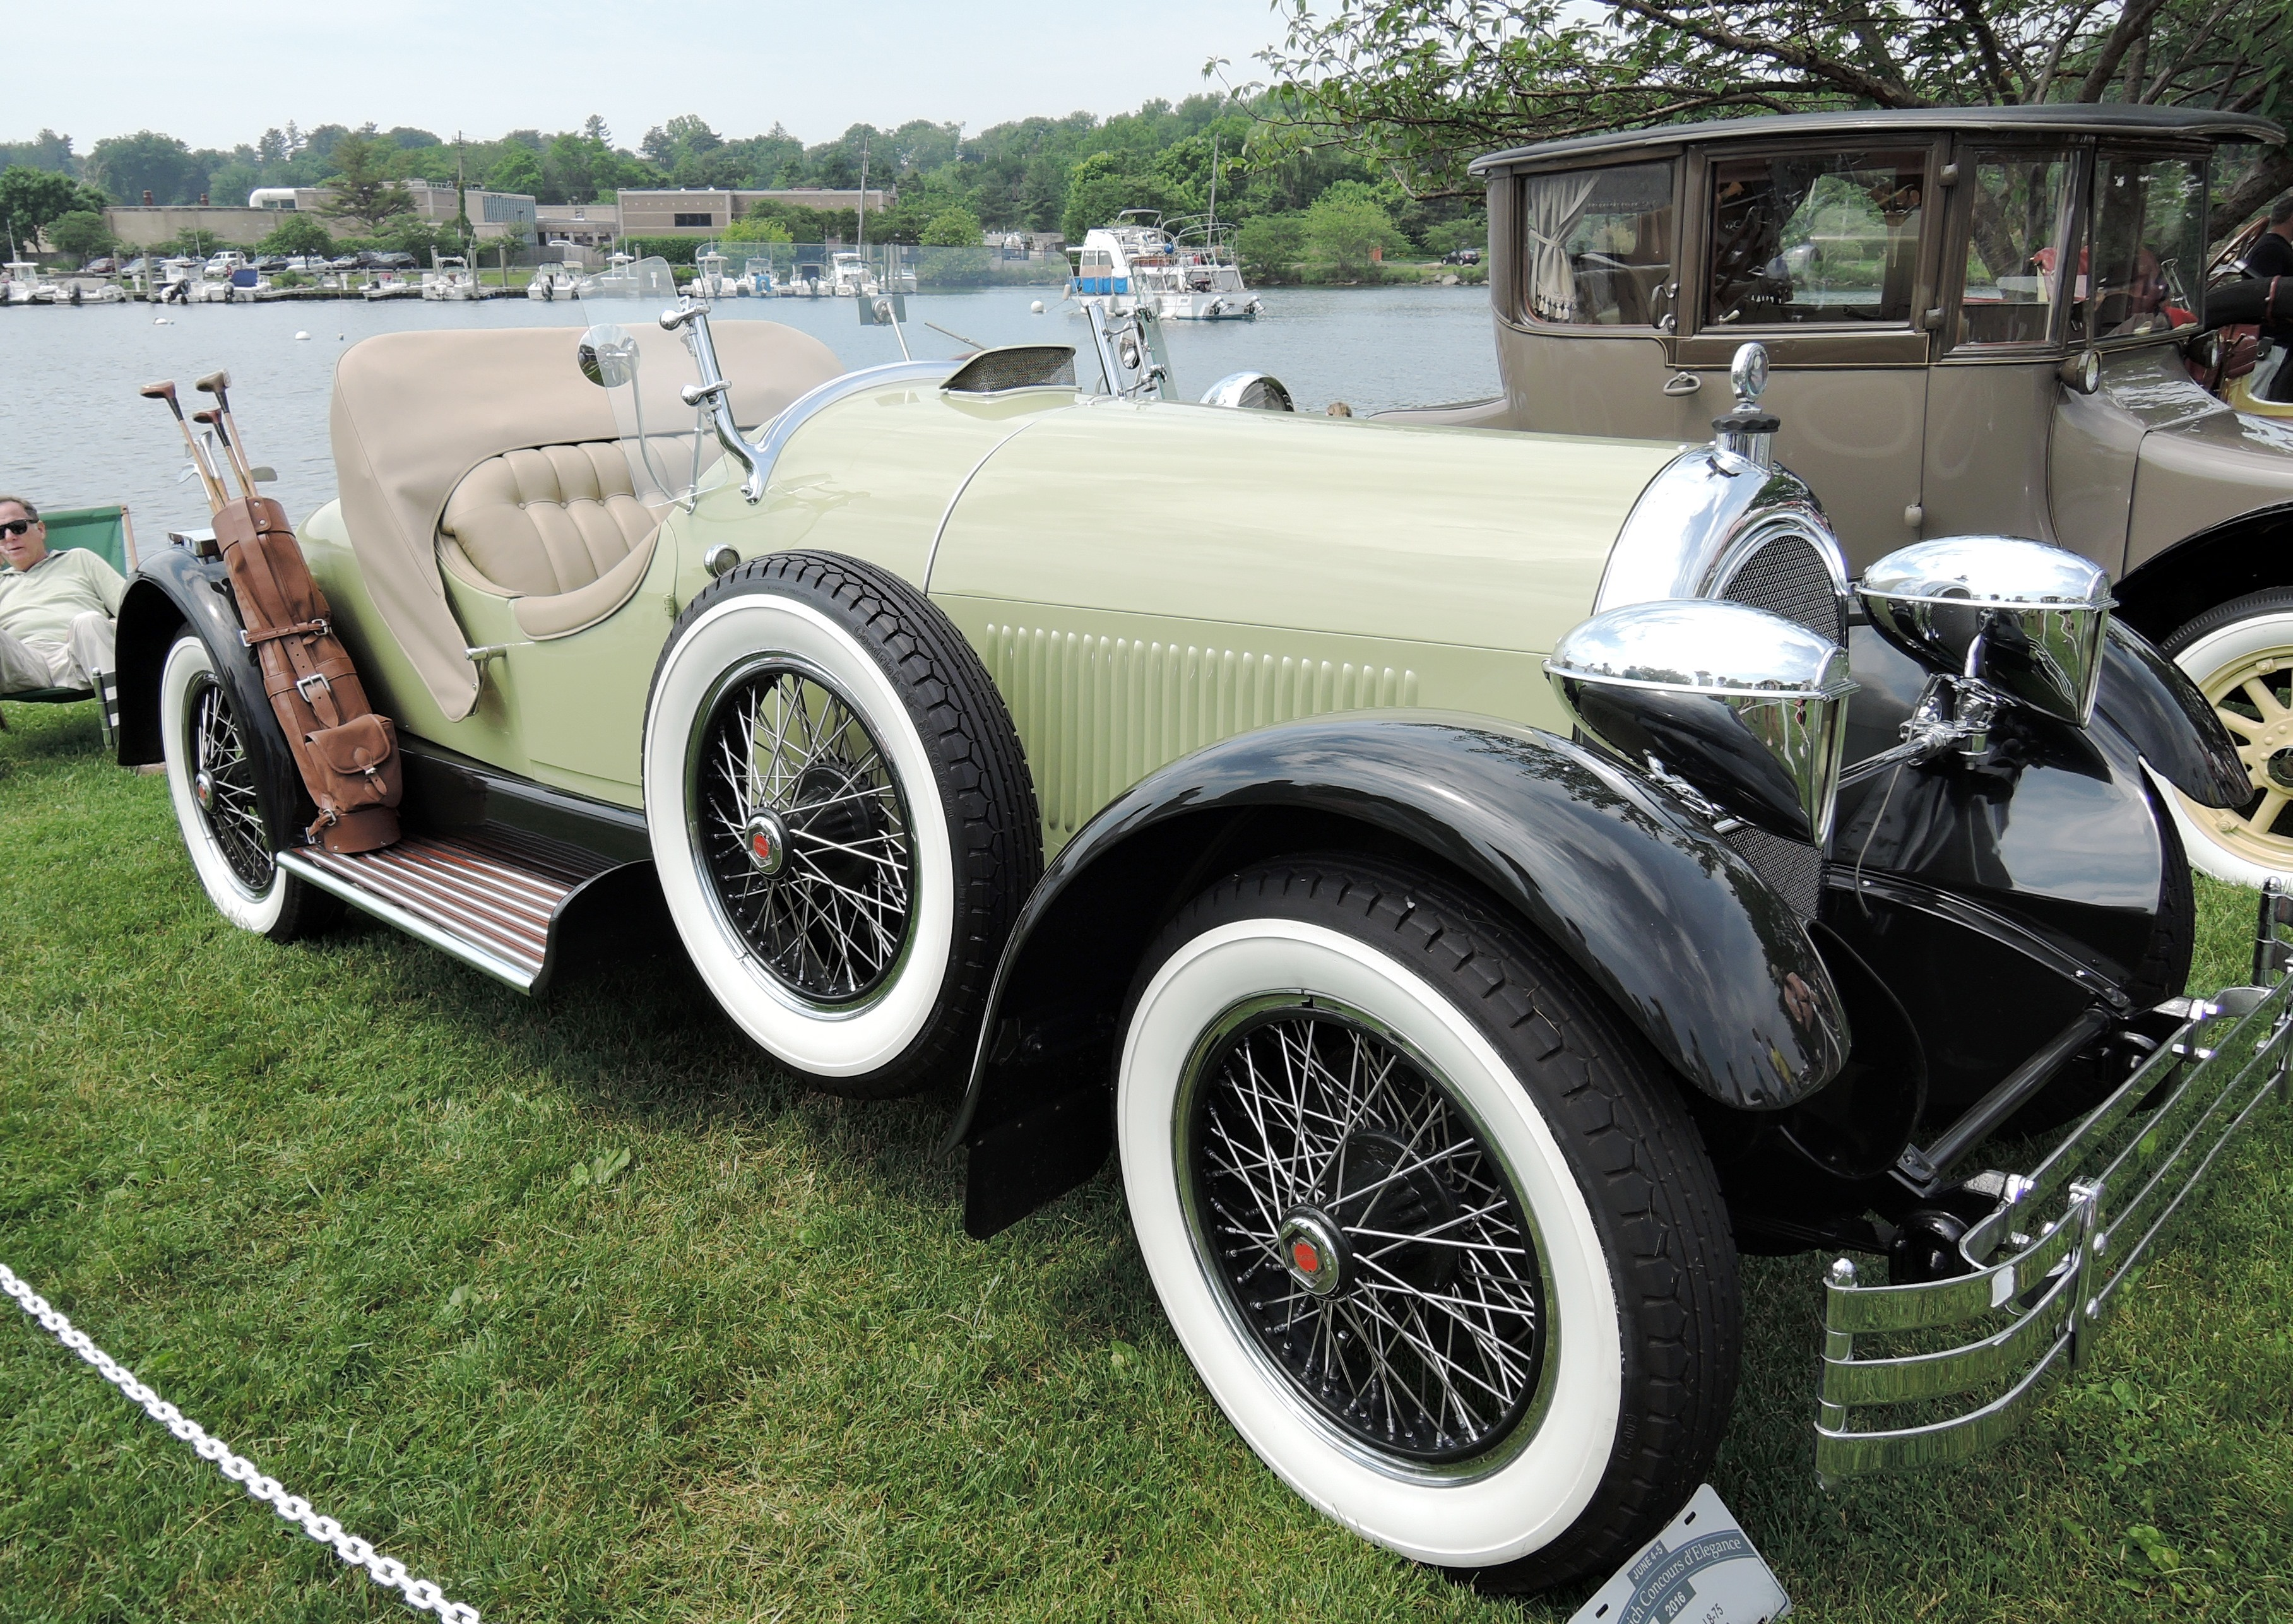 green 1926 Kissel 8-75 - greenwich concours